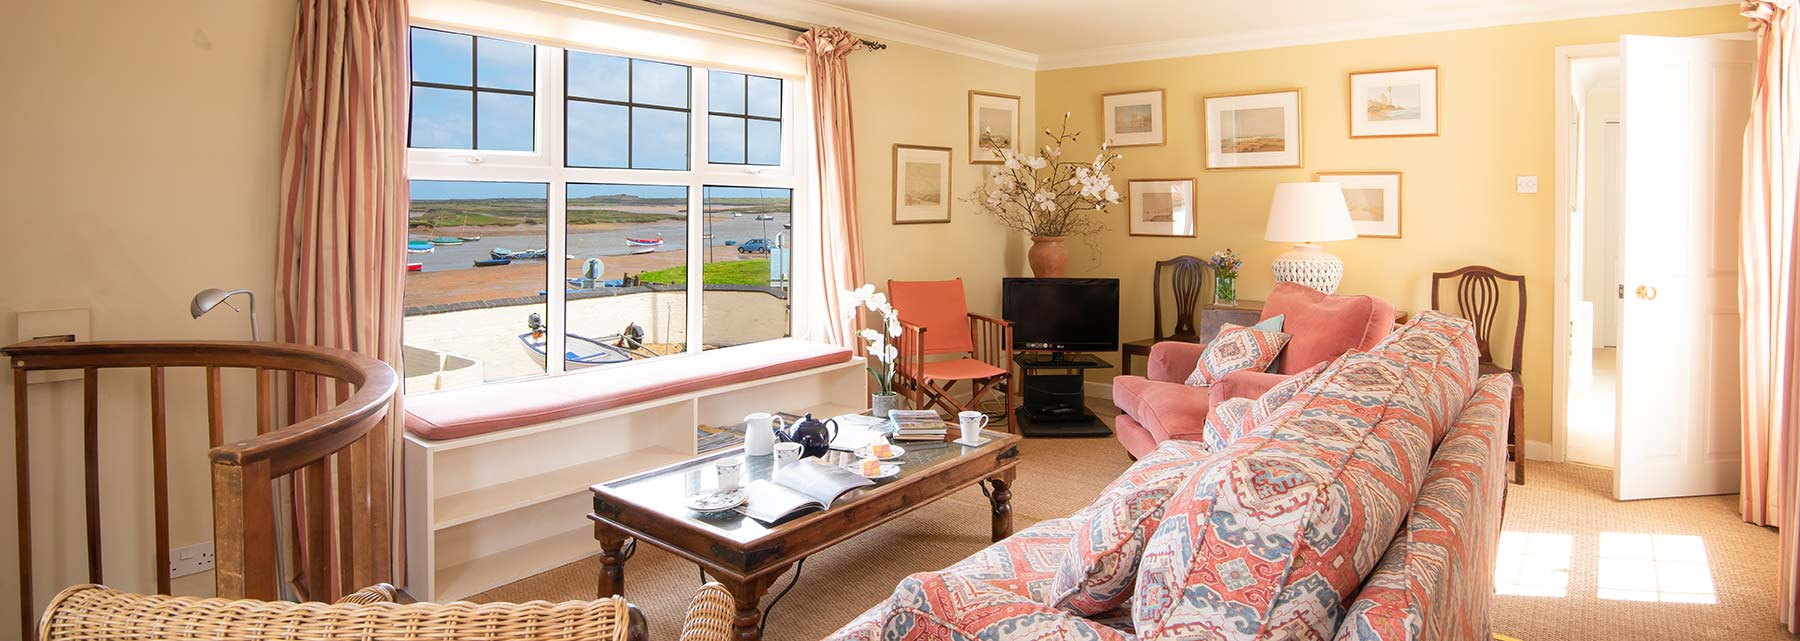 Flagstaff House - West Wing, Holiday Cottage, Burnham Overy Staithe, north Norfolk